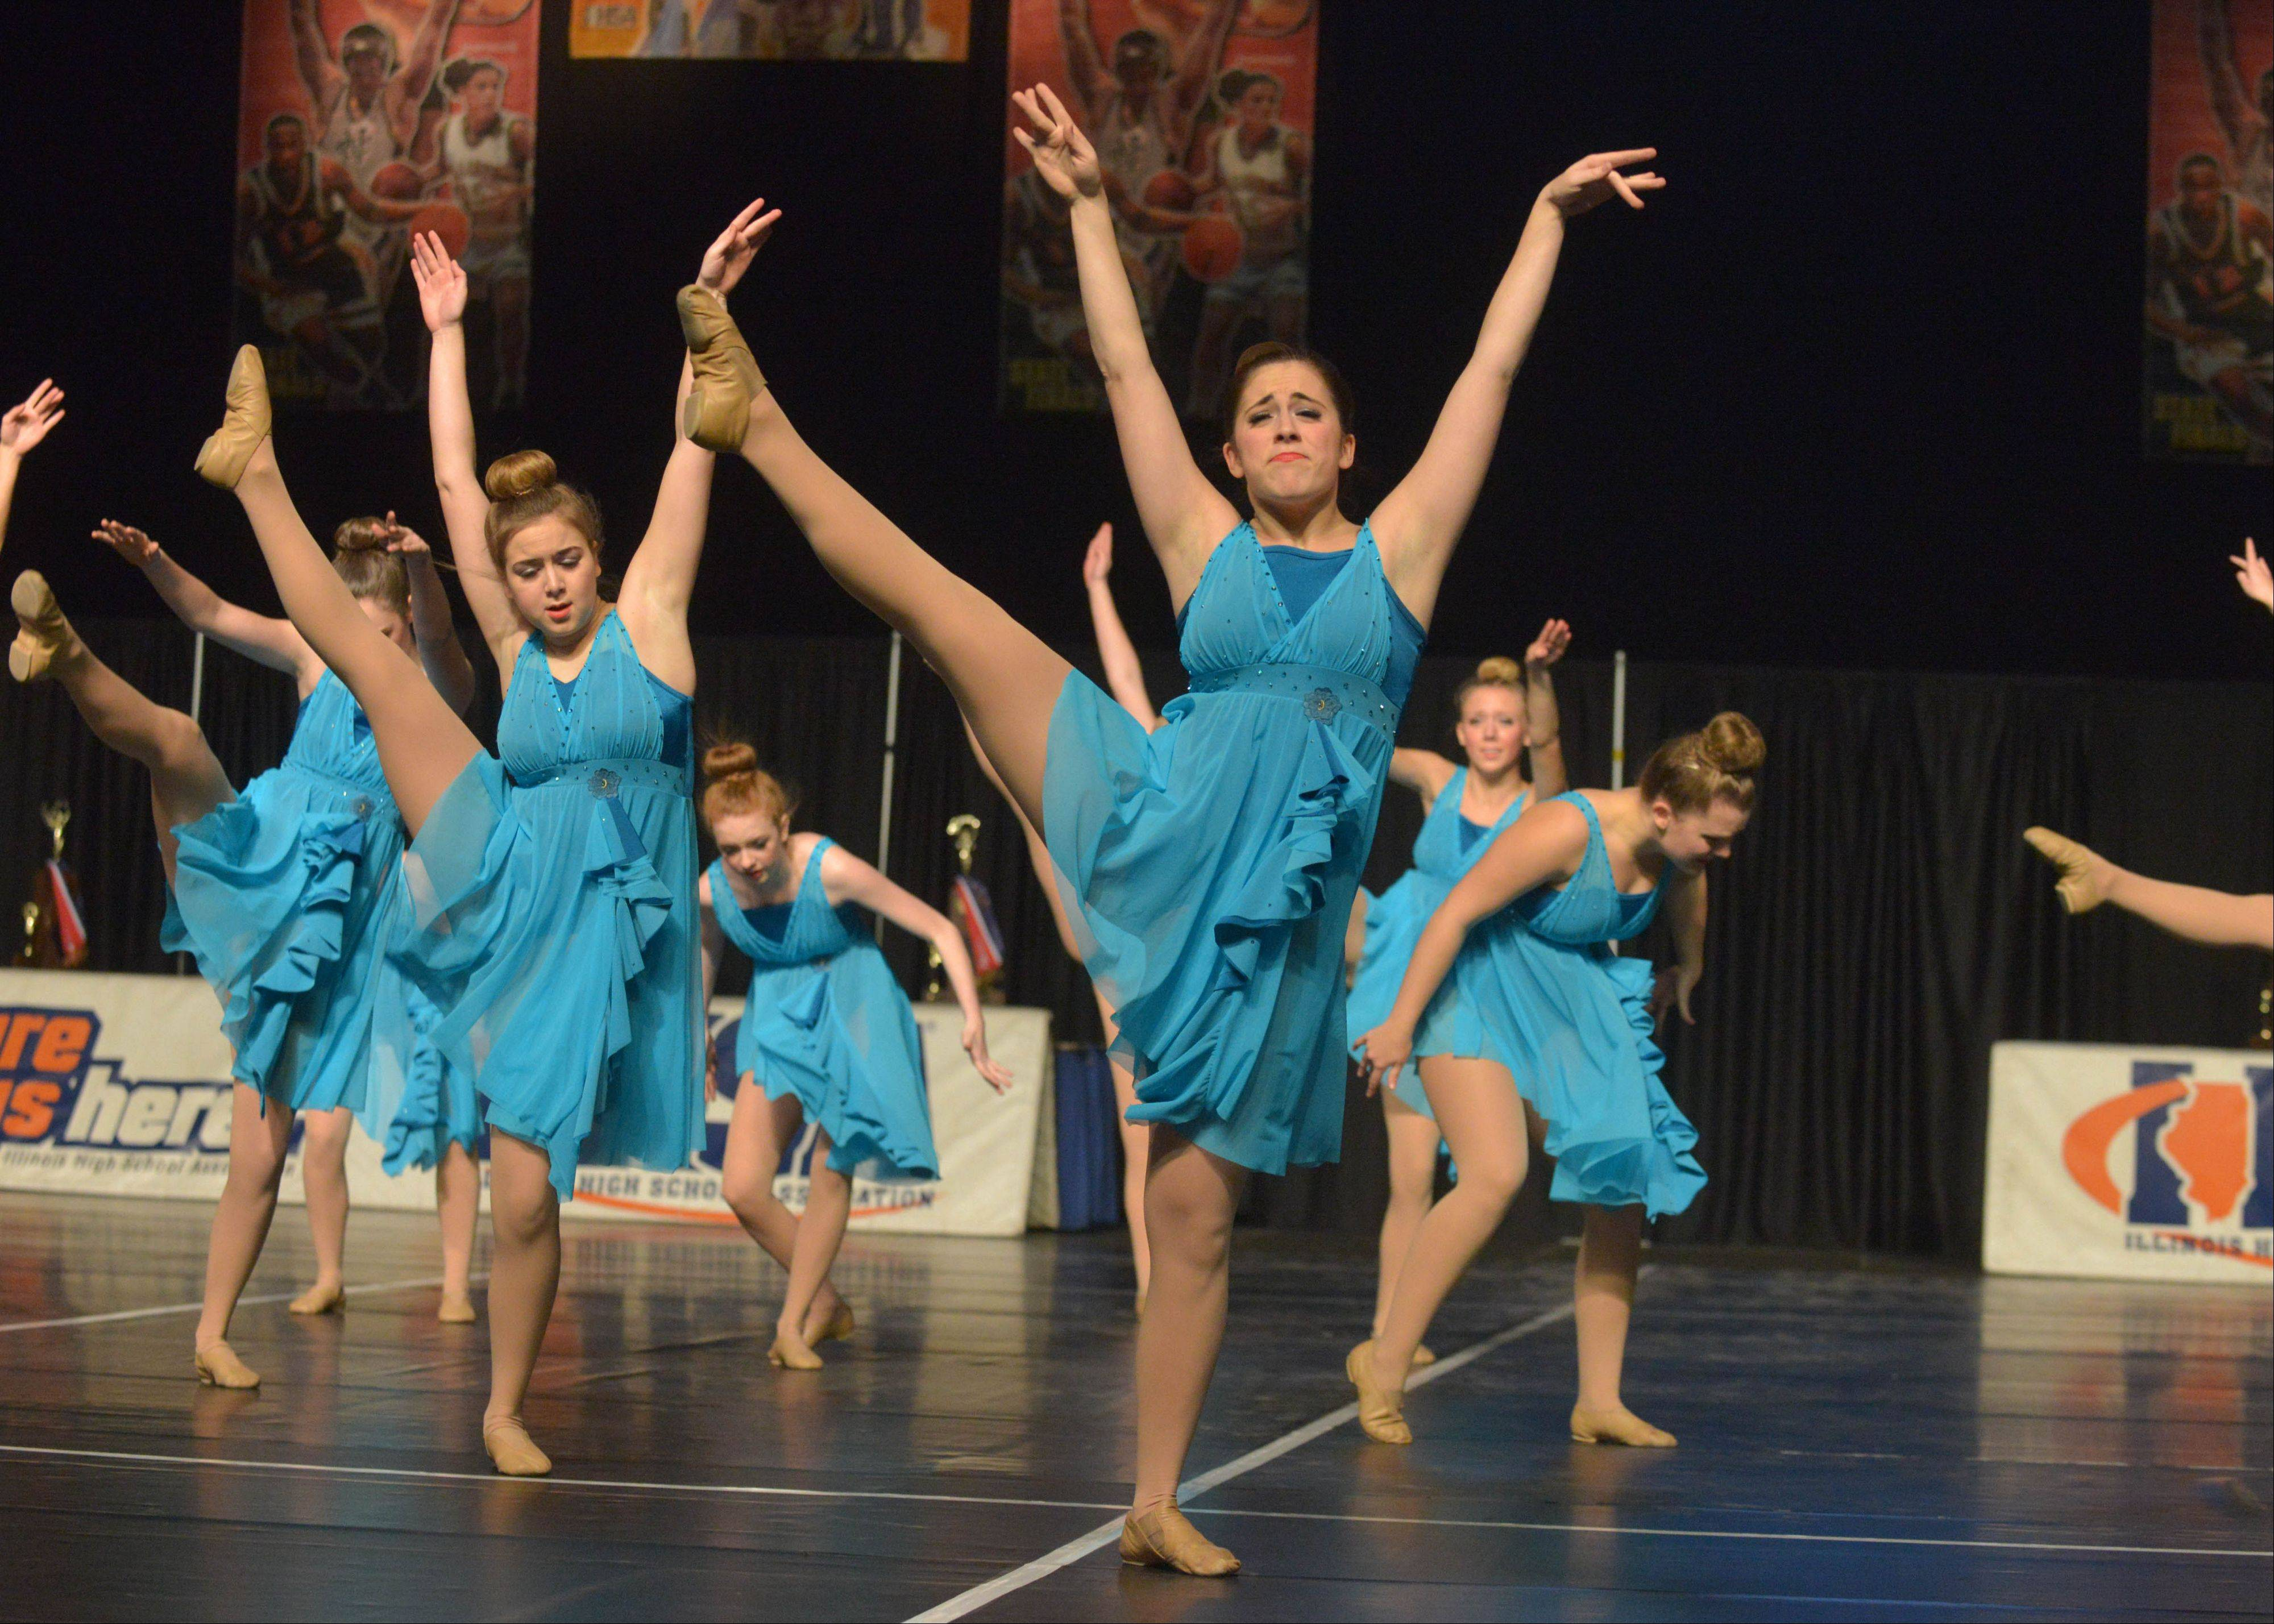 Saint Francis High School in Wheaton took part in the Competitive Dance preliminary 1A round Friday at U.S. Cellular Coliseum in Bloomington.